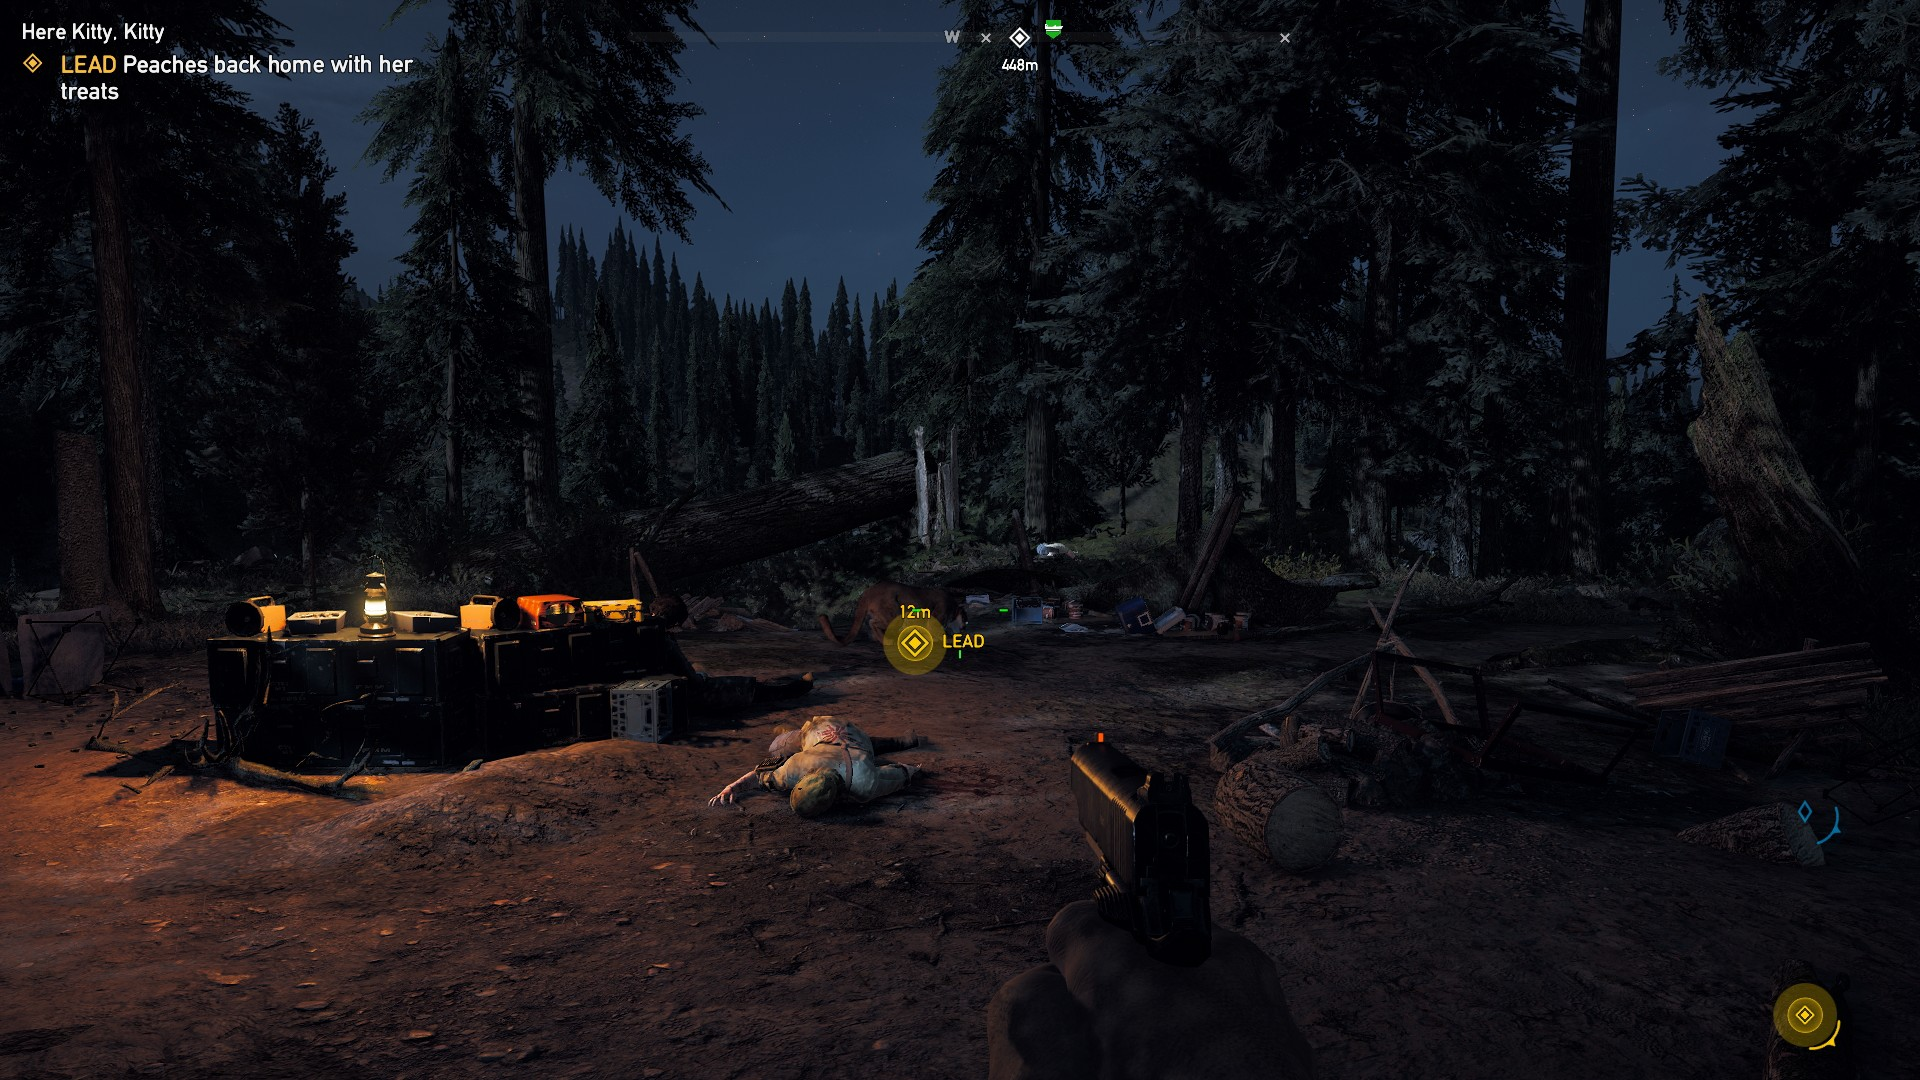 Far cry 5 how to get peaches